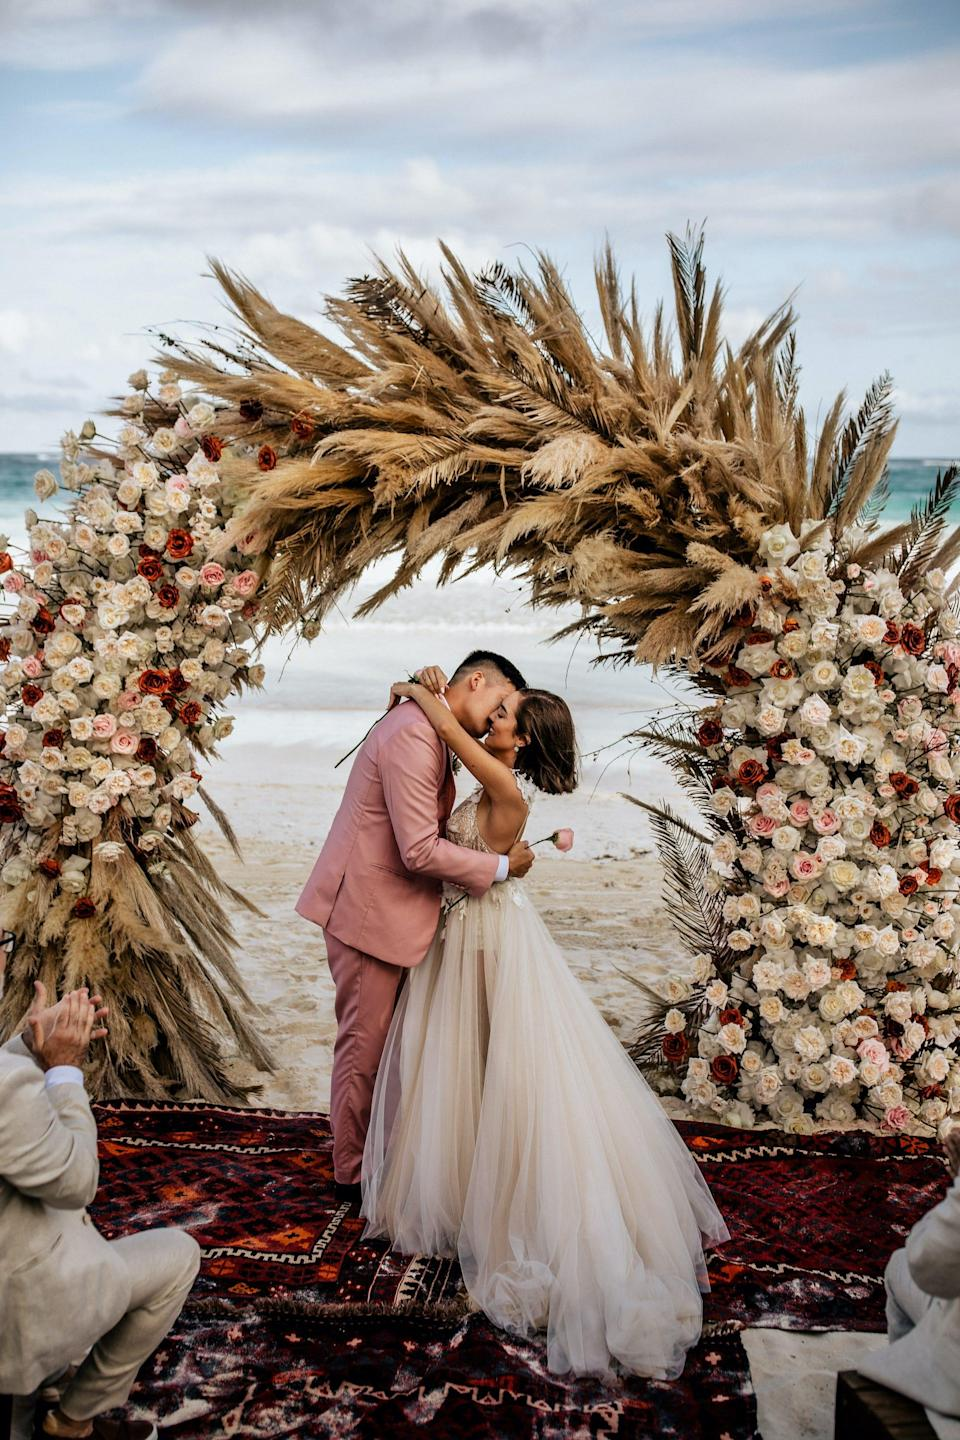 The Baks kiss during their wedding ceremony